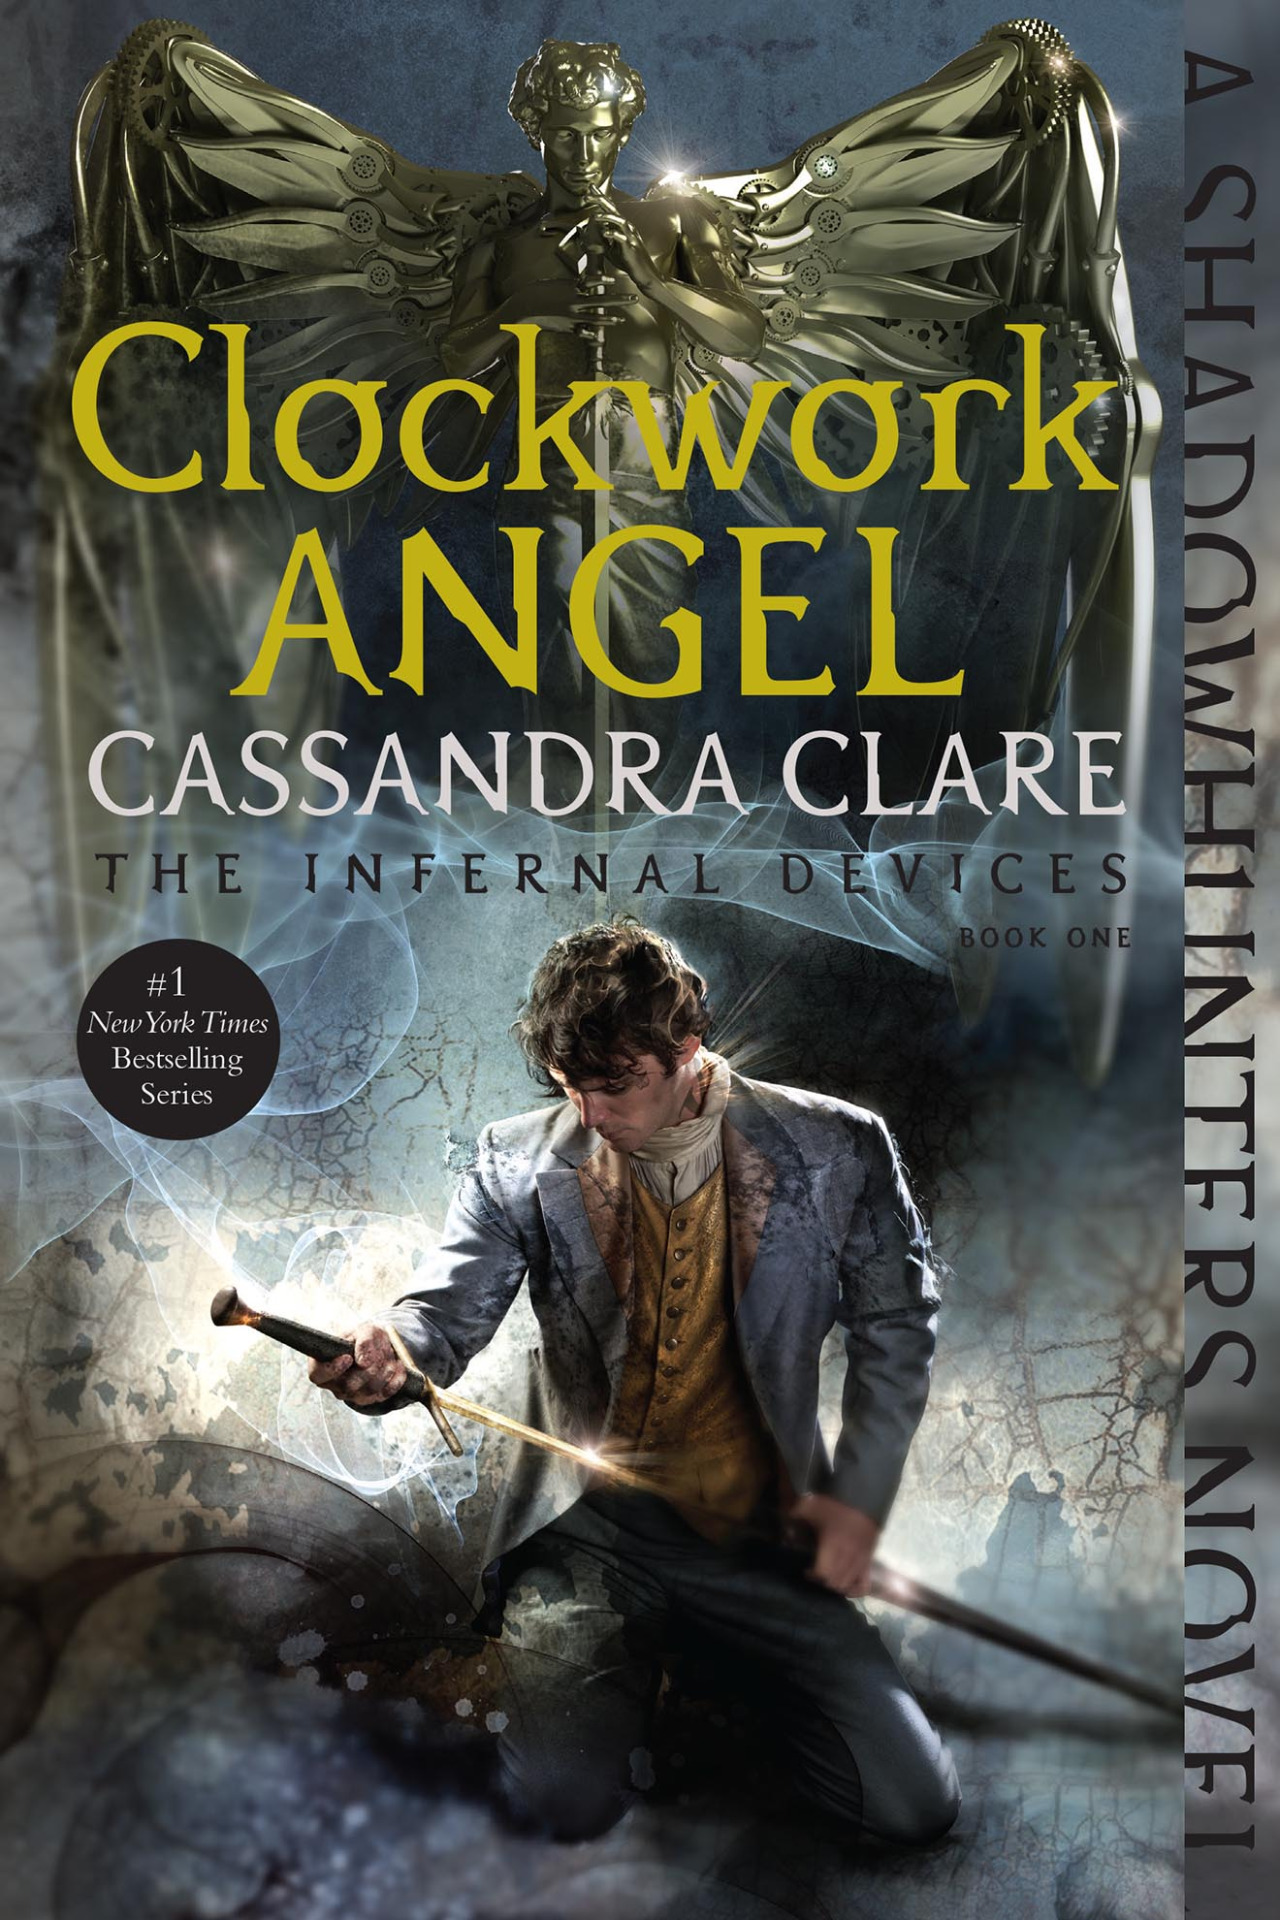 Clockwork Angel | The Shadowhunters' Wiki | FANDOM powered ...